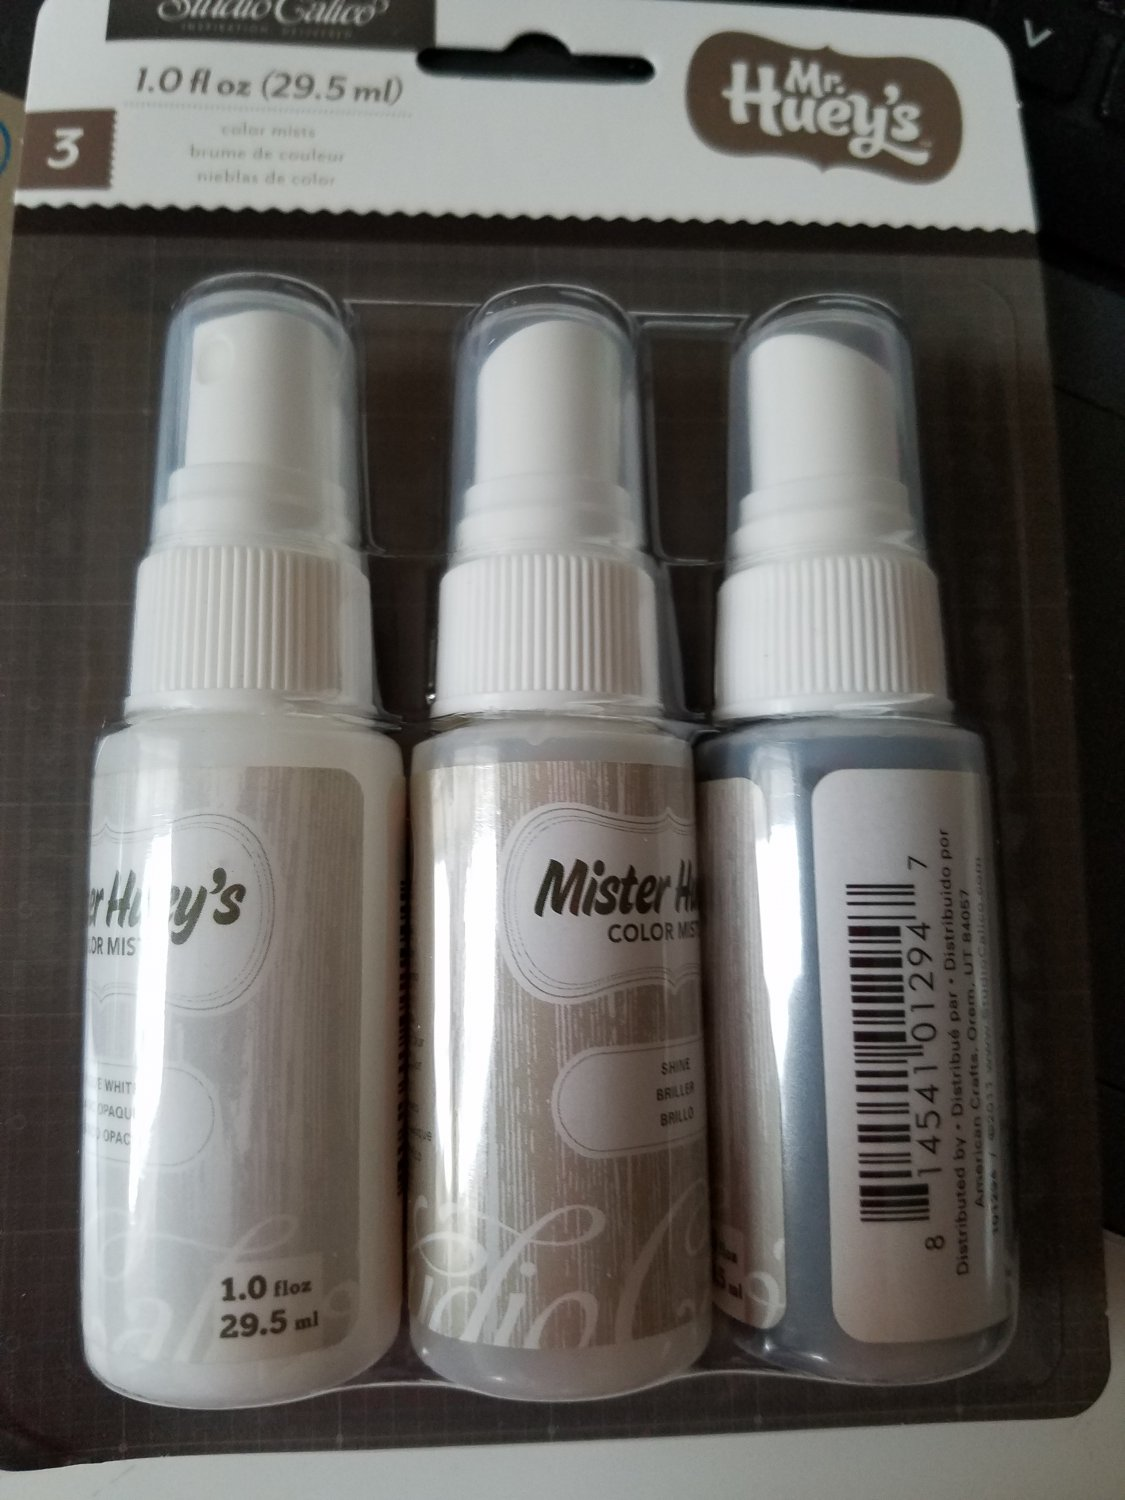 Studio Calico Mister Huey's Color Mist - 3 pack